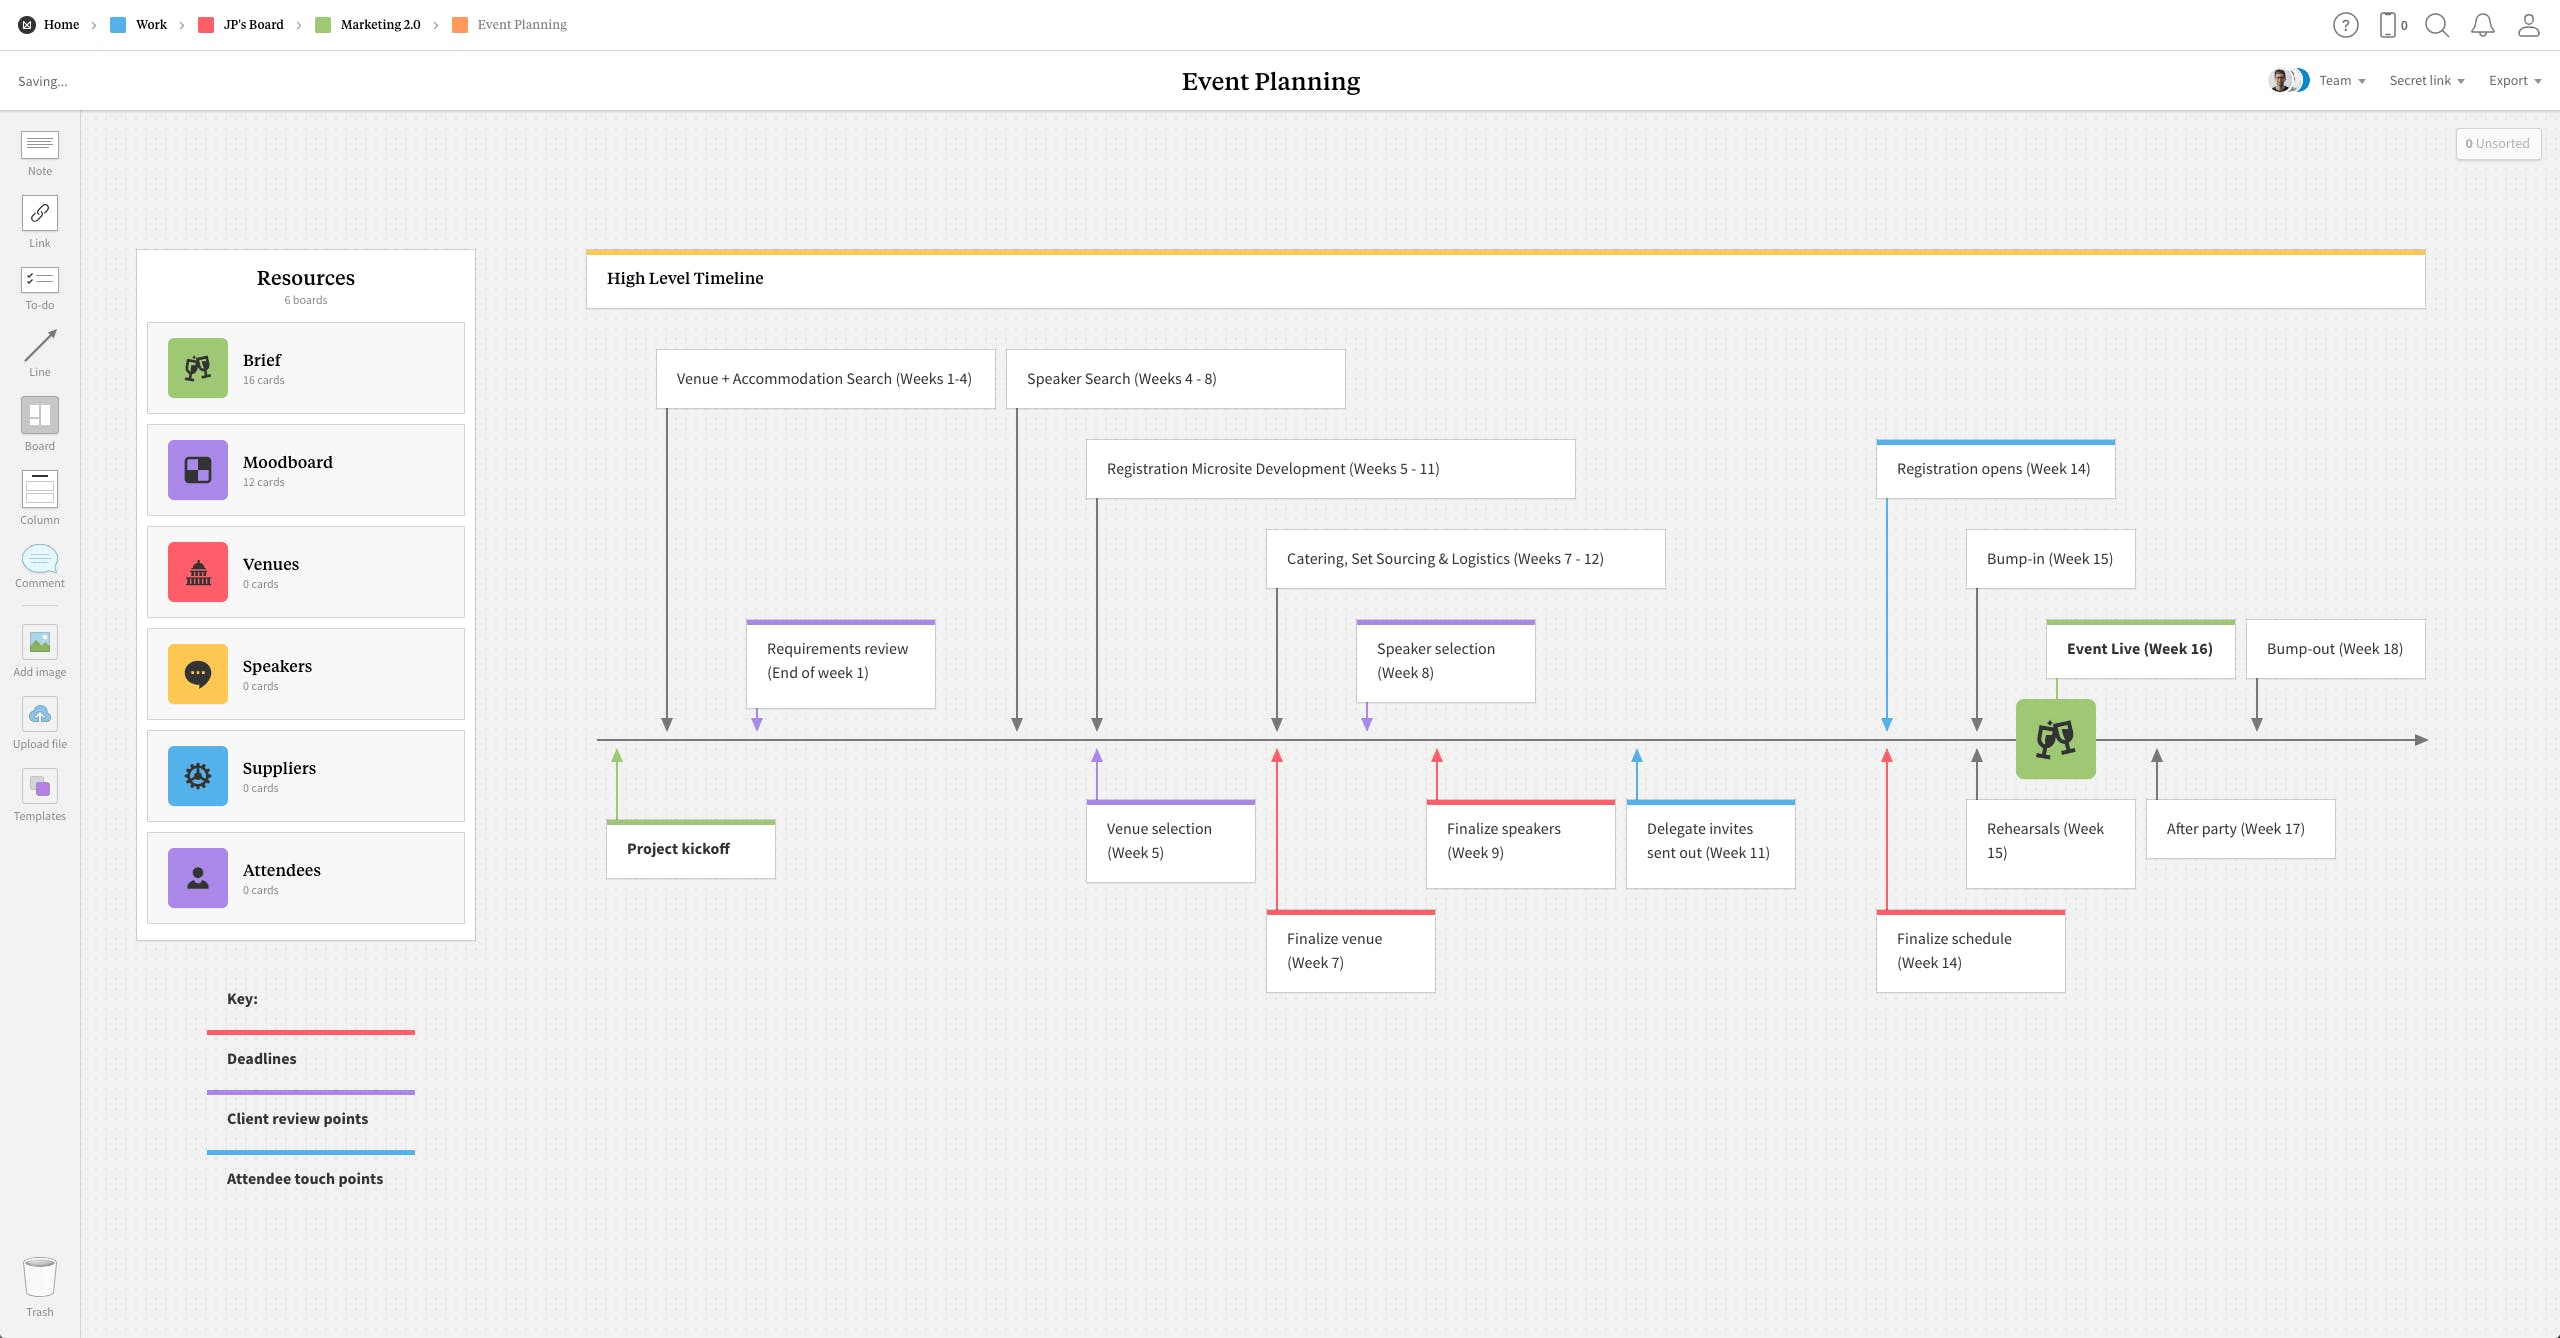 Completed Event Planning template in Milanote app